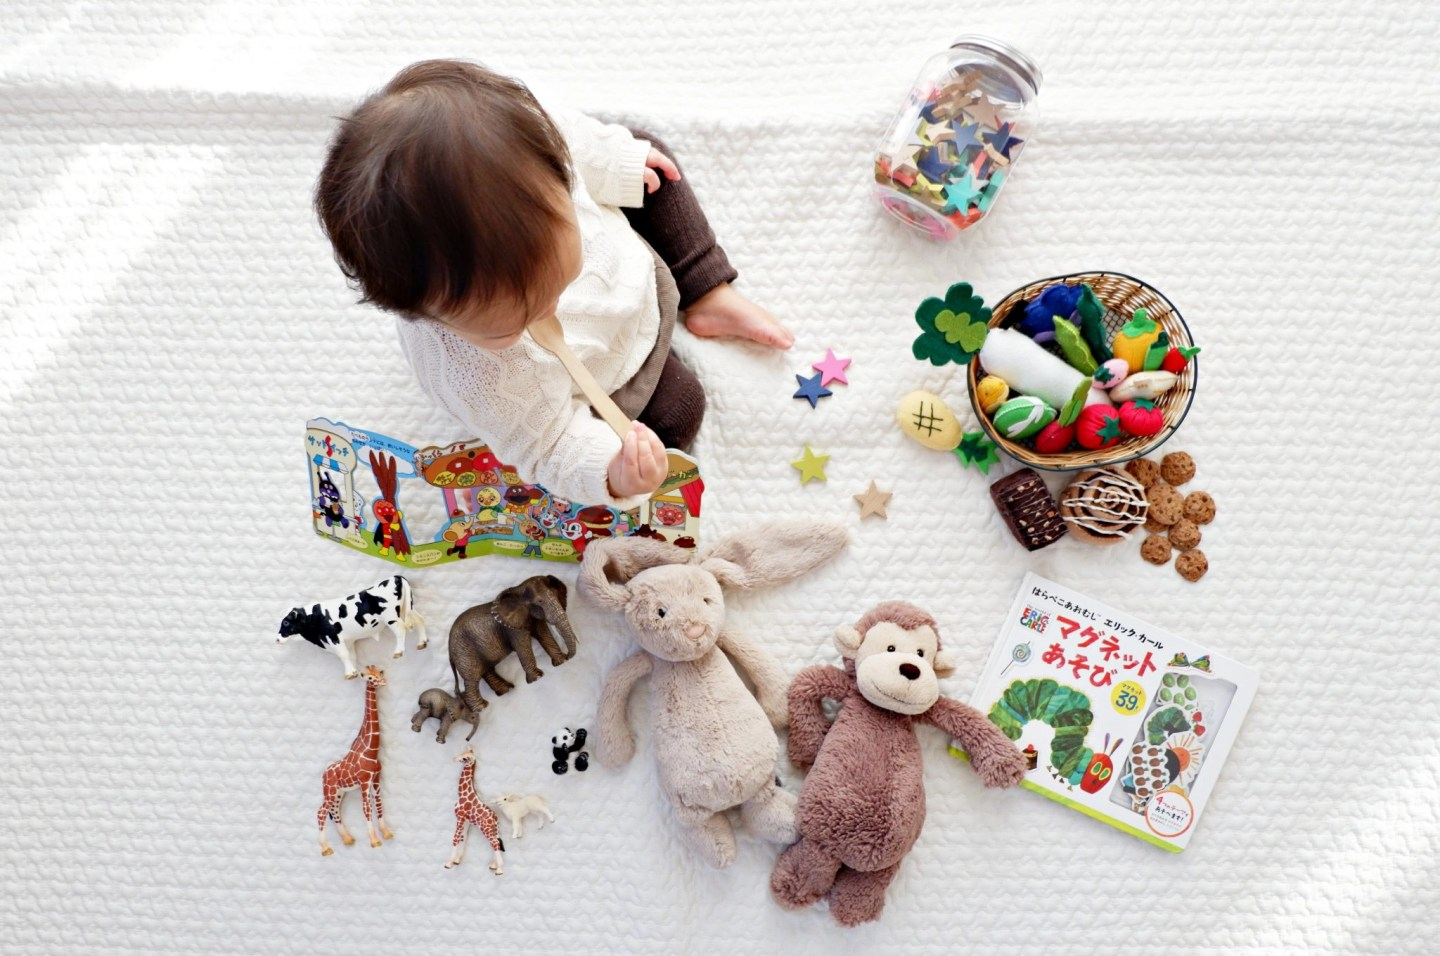 Top 5 Toys for One Year Olds A Quick List for Busy Parents